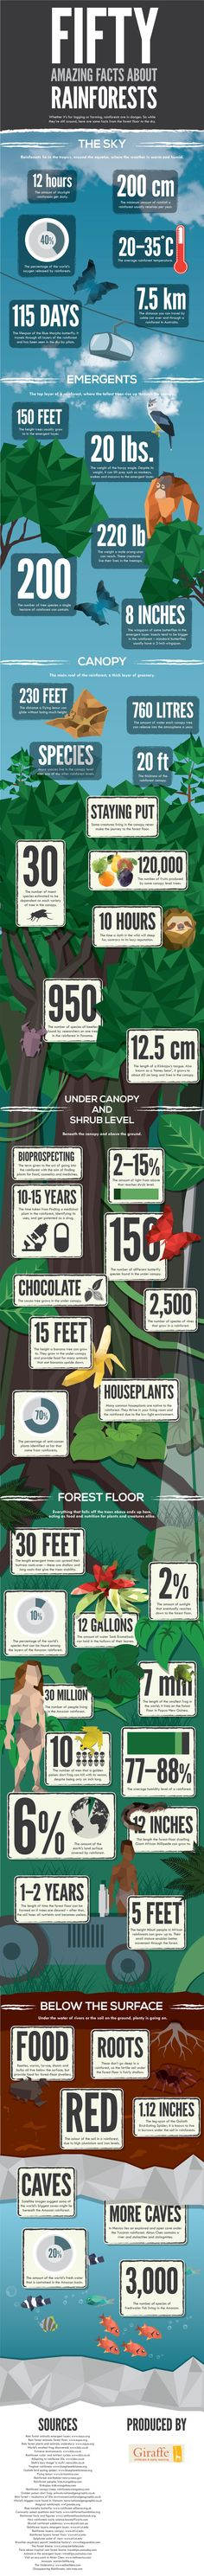 Infographic: Amazing Facts About Rainforests' (According to the National Geographic, rainforests could vanish from the planet completely within the next century if current deforestation rates continue. National Geographic, Earth Science, Life Science, Science Facts, Rainforest Facts, E Mc2, Applied Science, Thinking Day, We Are The World